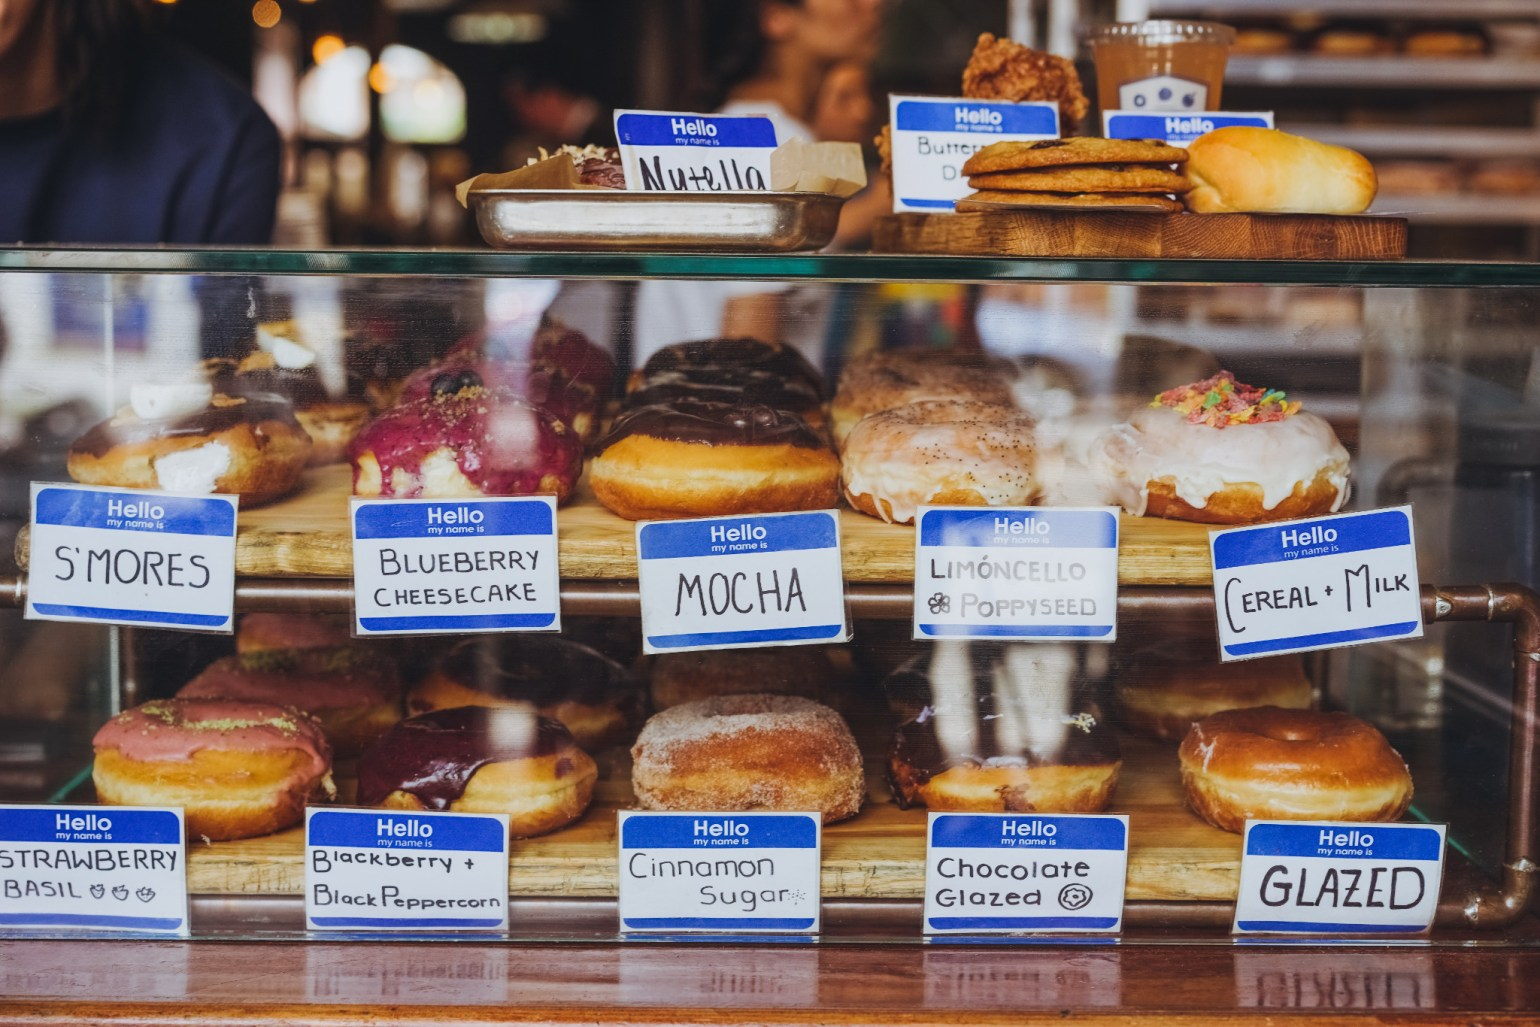 An array of flavored donuts at the popular pastry joint, District Donuts. (Photo: Paul Broussard)